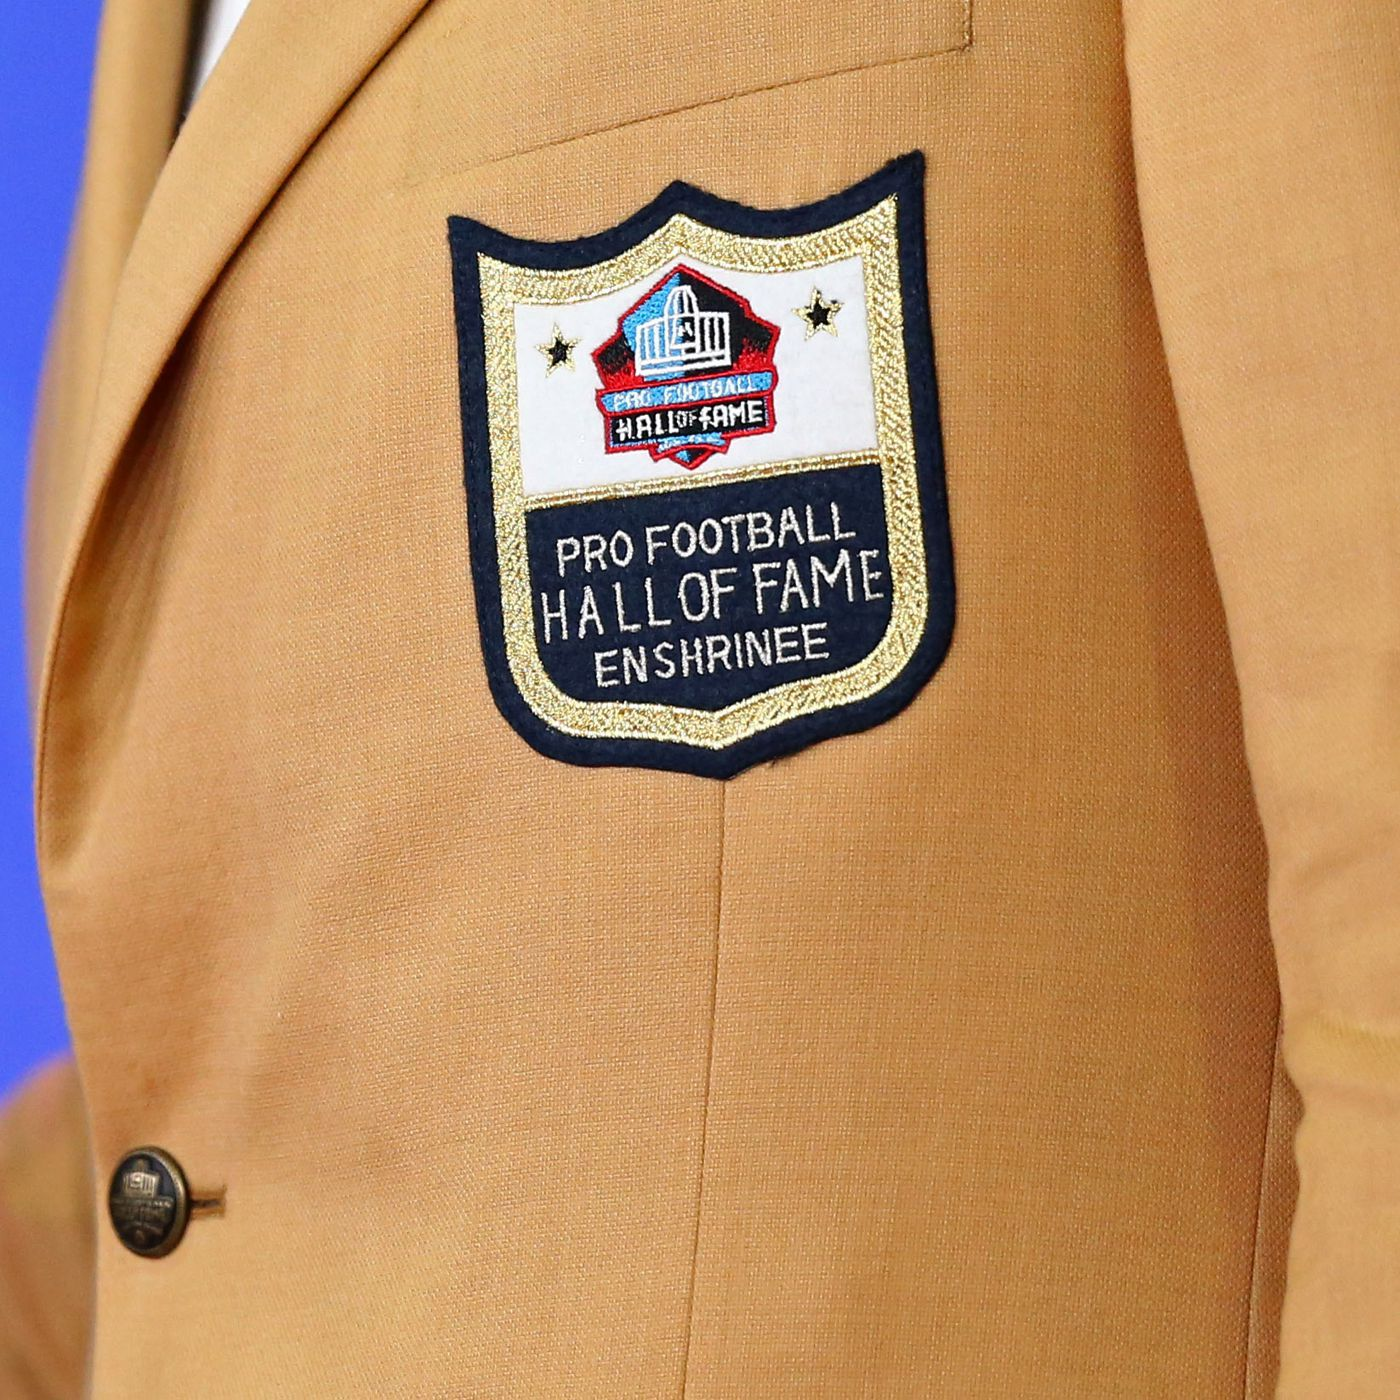 newest 60ede f1872 Terrell Davis received his gold jacket - Mile High Report